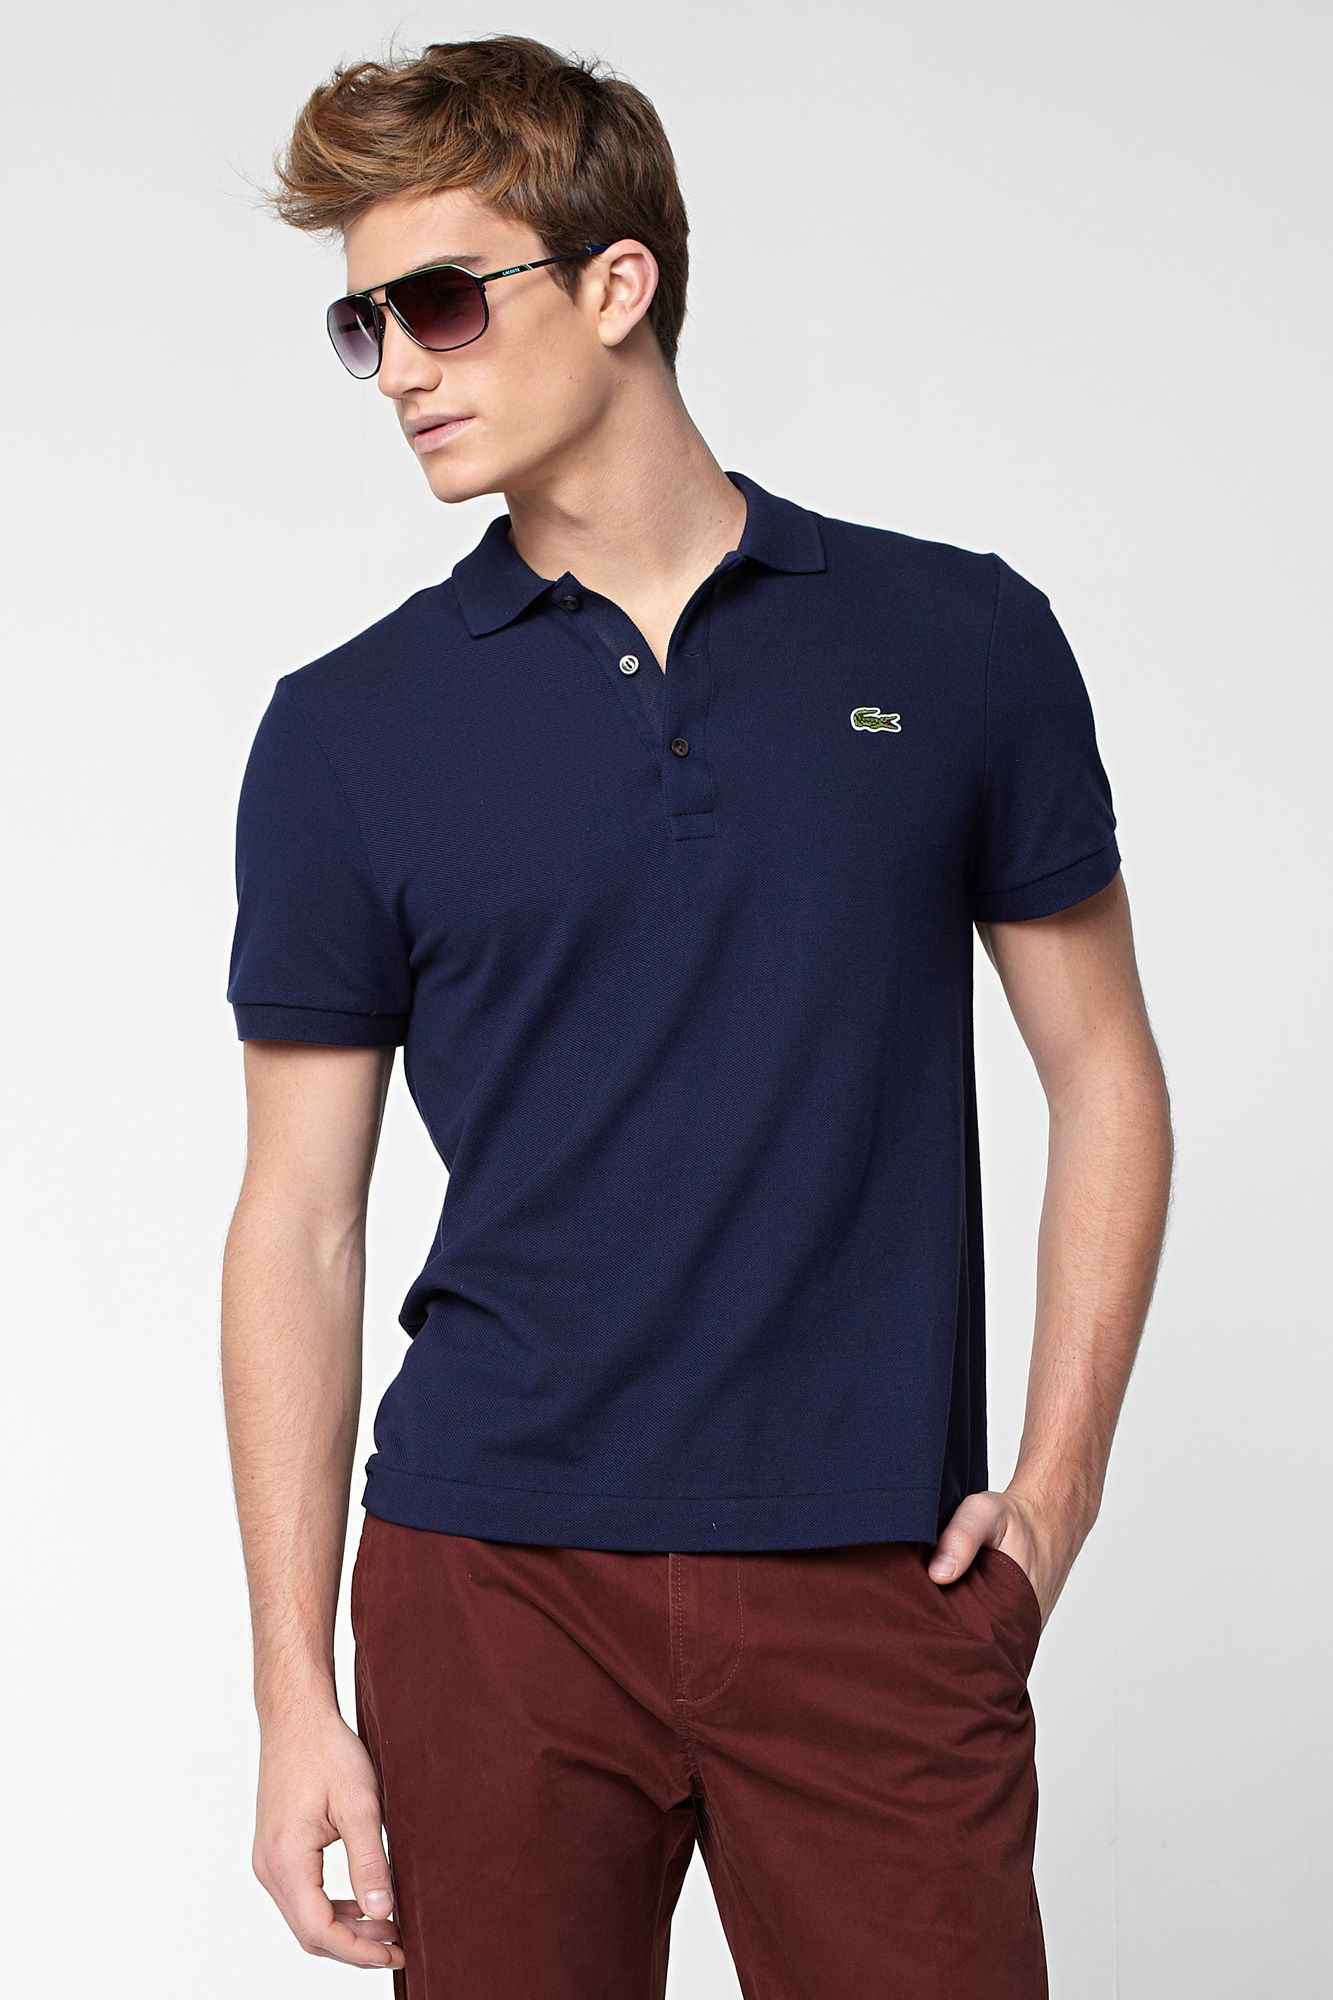 309422462c5e28 gamesinfomation.com Lacoste Polo Shirt, Short Sleeve Slim Fit Pique Polo  Navy Blue Shirt coupon| gamesinfomation.com